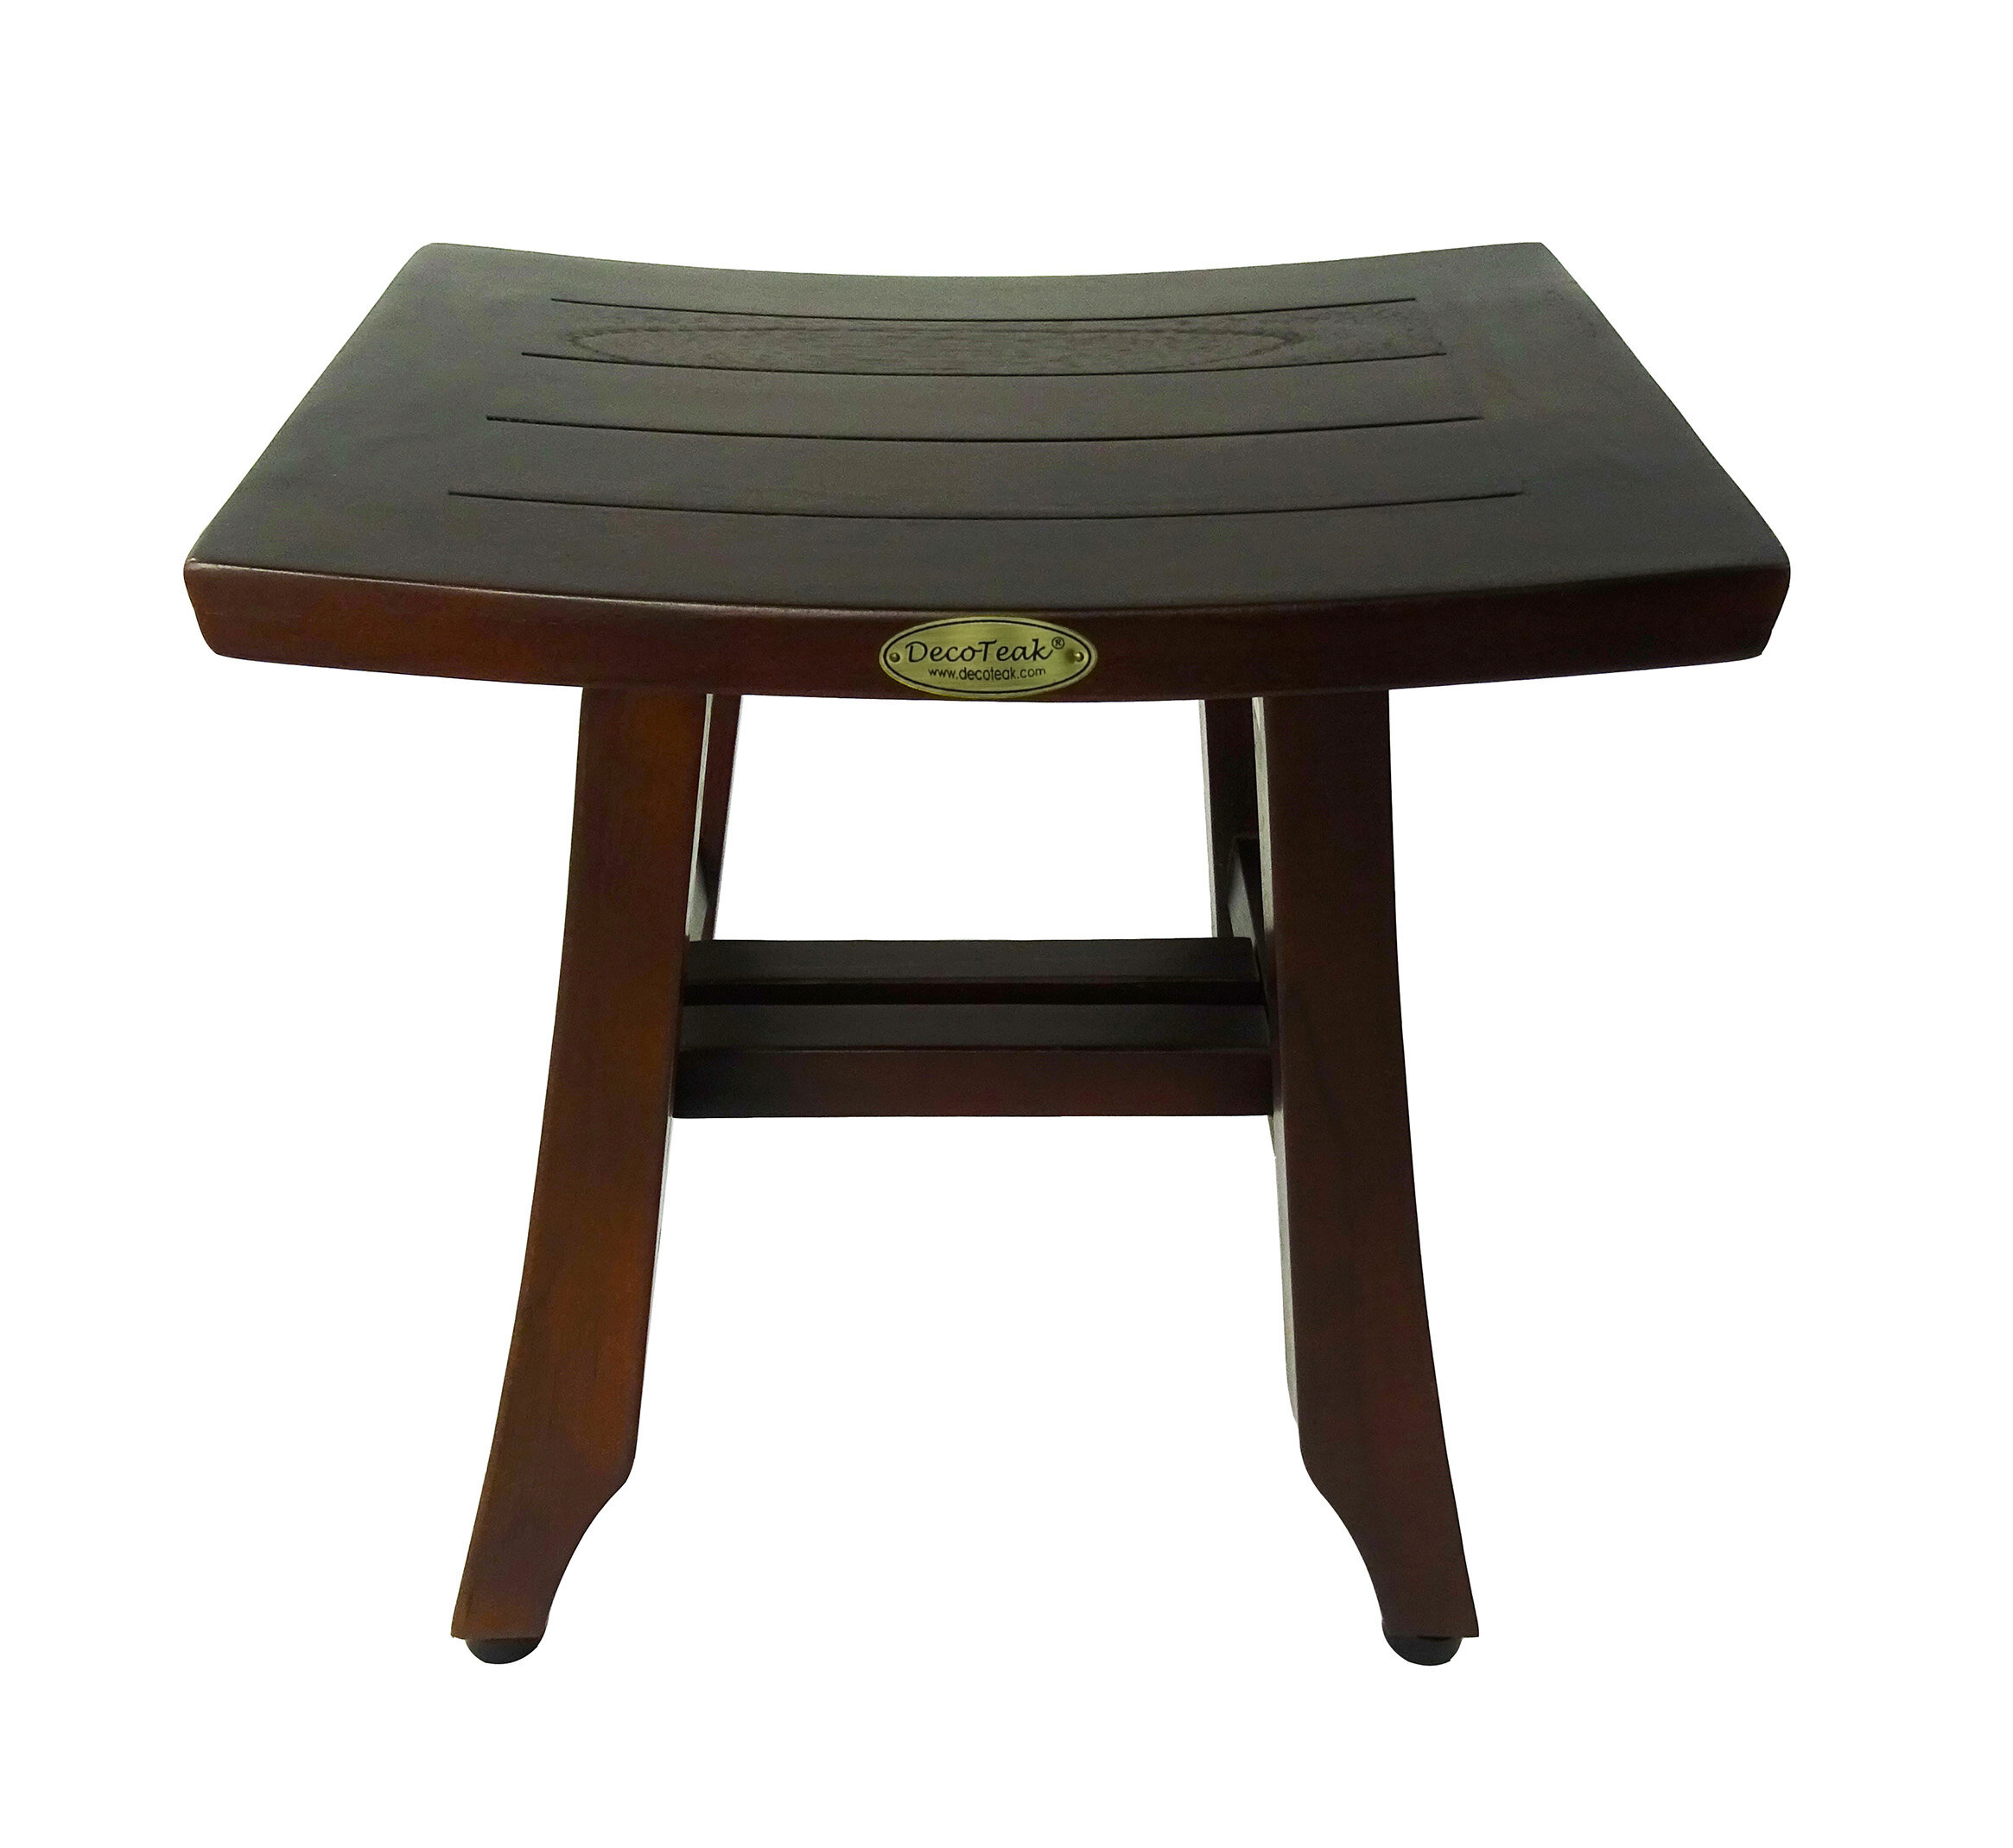 oceanstar p in bench shower storage solid teak wood chairs stool shelf with x spa stools color